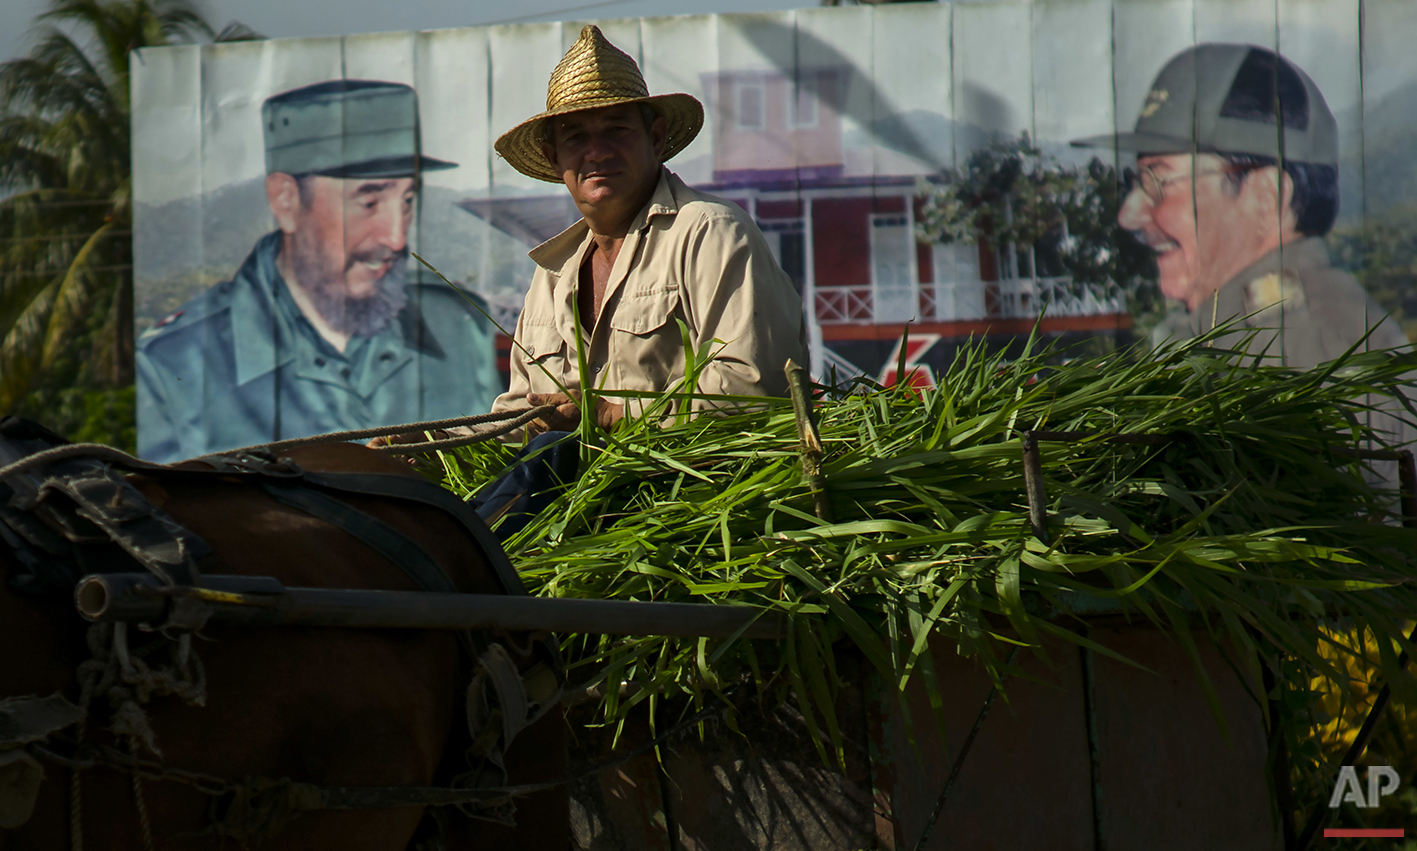 In this June 14, 2016 photo, a farmer carrying grass to feed his animals steers his horse-drawn cart past a welcome sign featuring brothers Fidel and Raul Castro, at the entrance of Biran where the Castro's were born in eastern Cuba. Many of the area's young people have migrated to Cuban cities or overseas, leaving parents and grandparents working the land. (AP Photo/Ramon Espinosa)